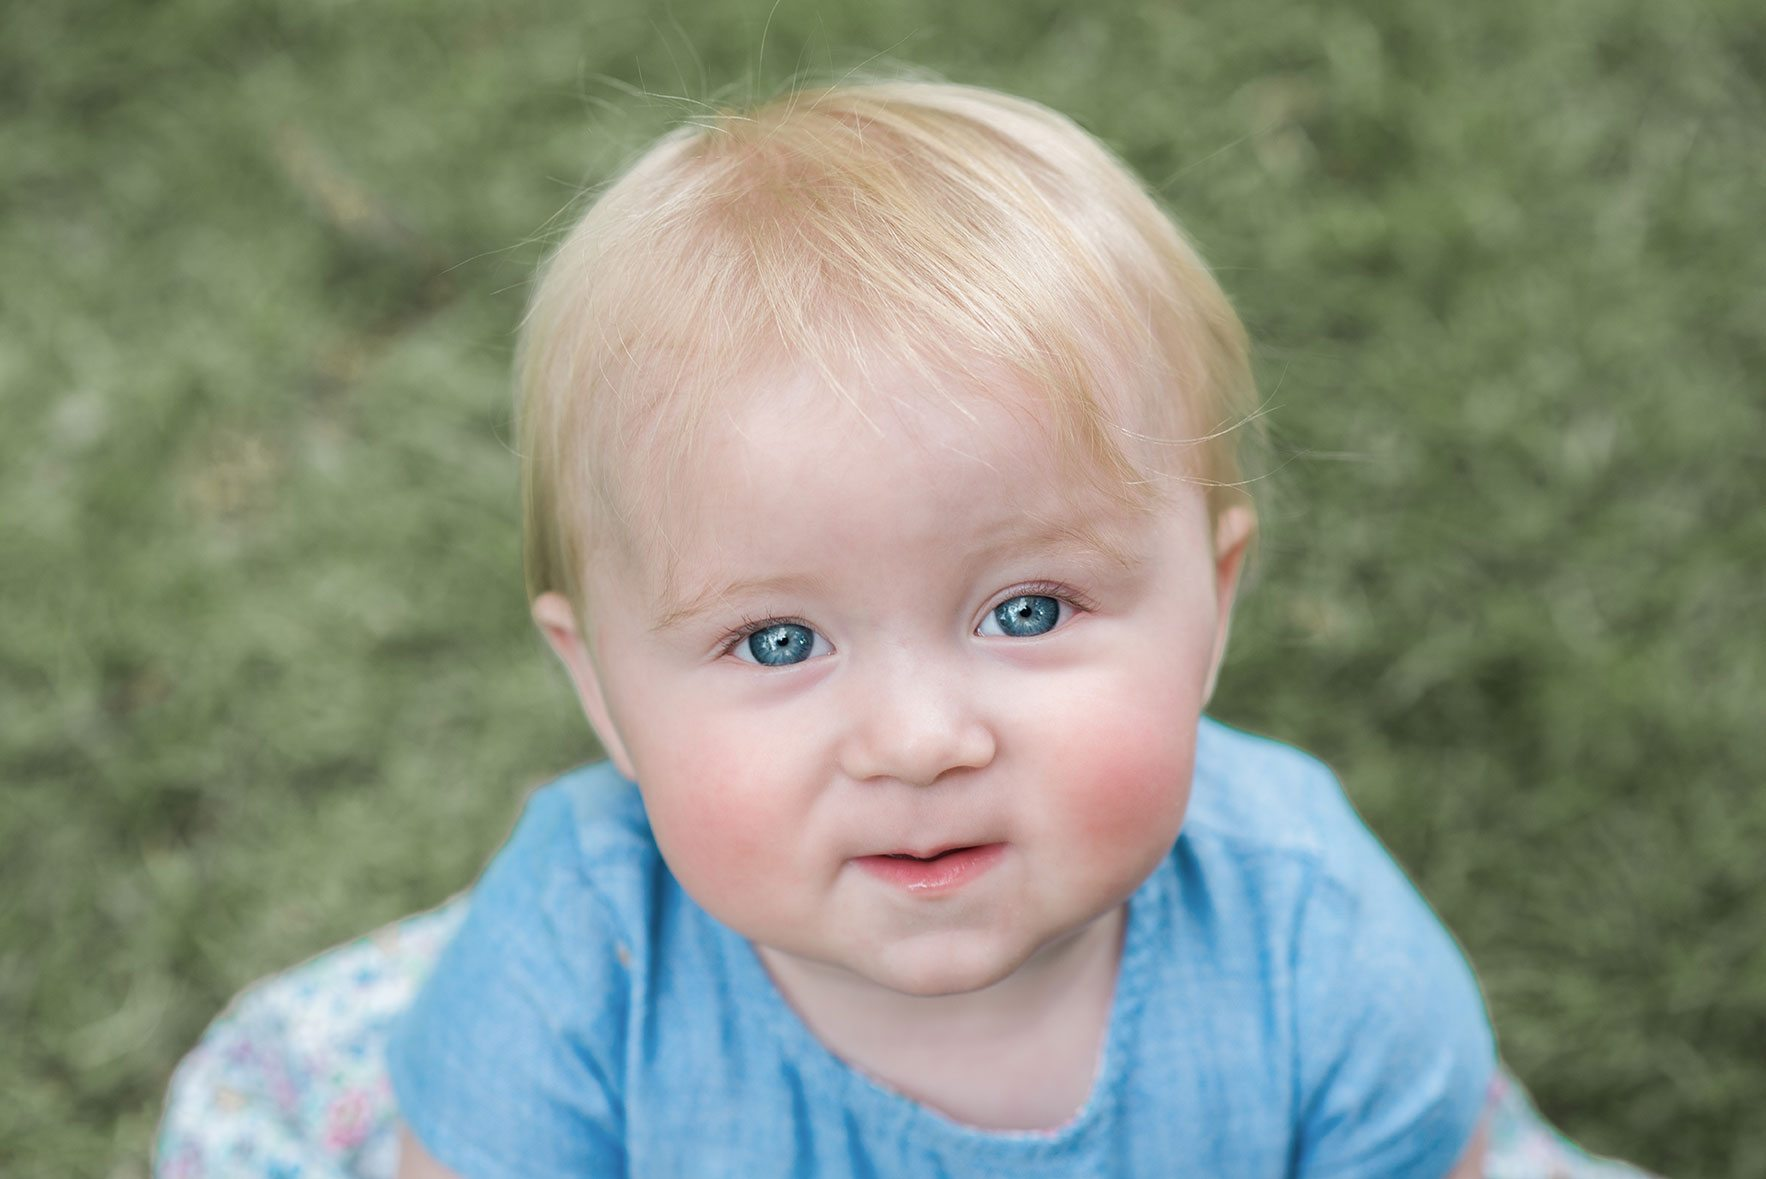 Close up baby girl with blonde hair blue eyes outside looking up at camera in Halstead.